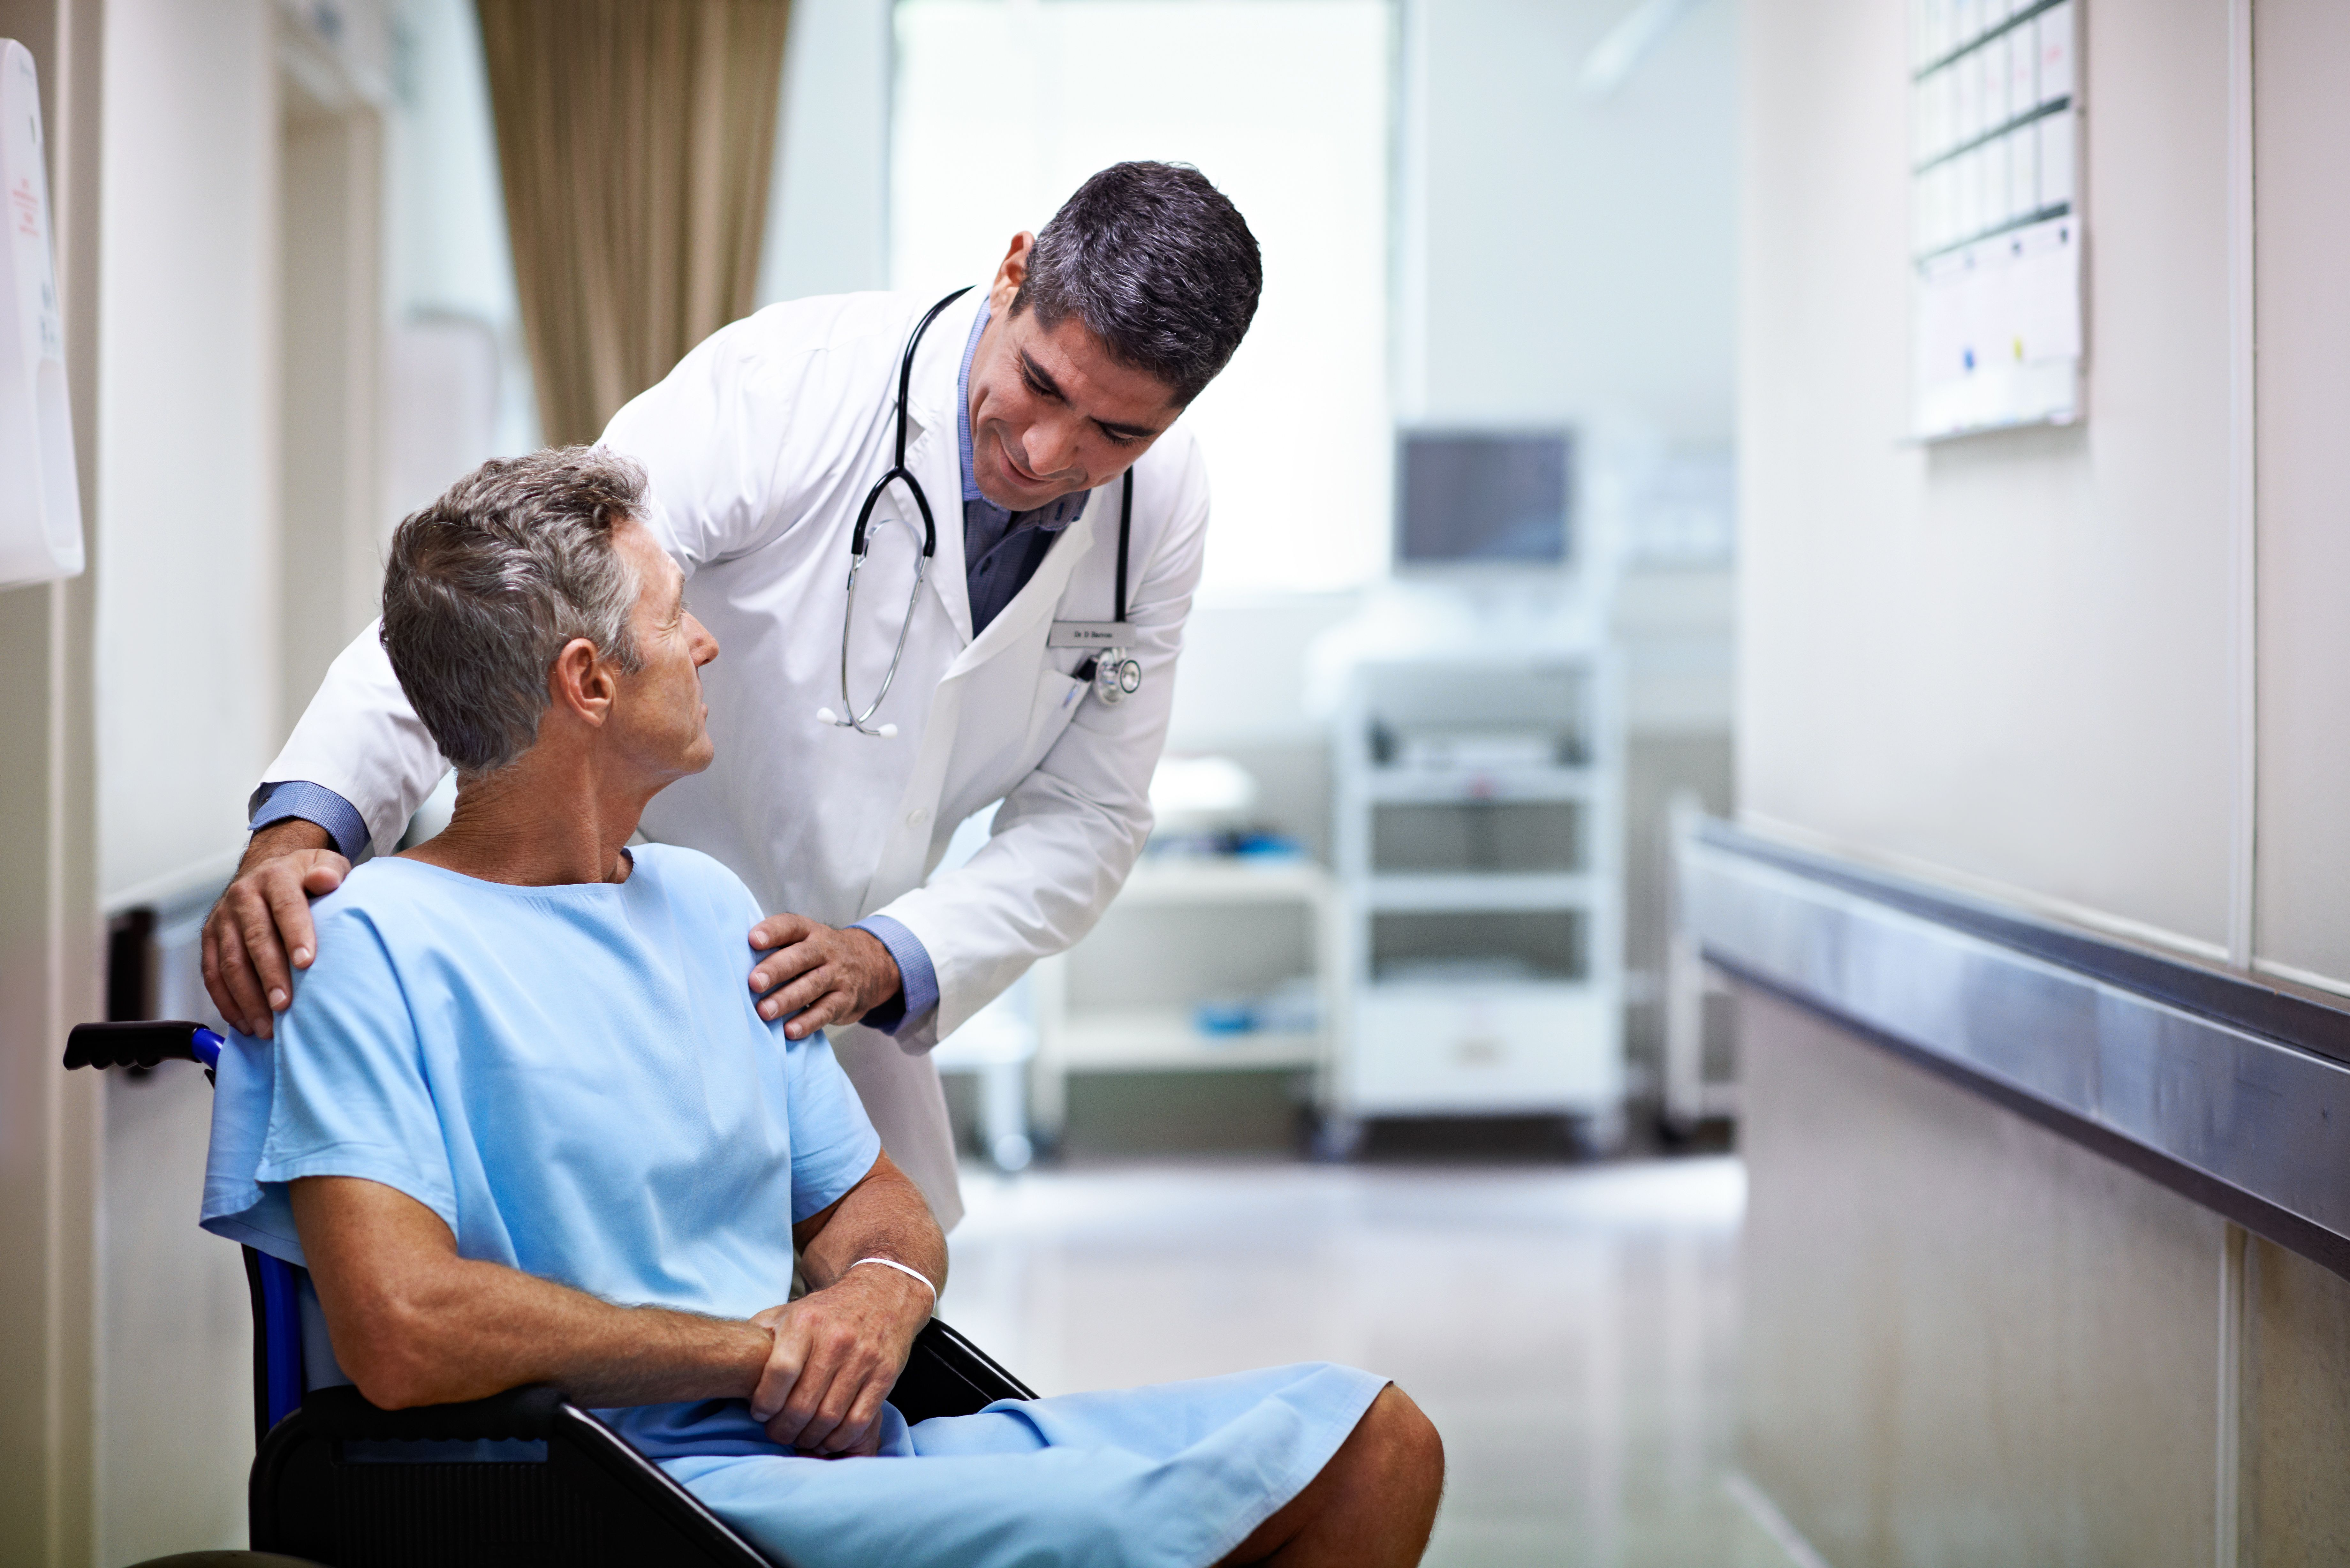 A male doctor in a white lab coat touches the shoulders of a male patient and looks at him reassuringly.